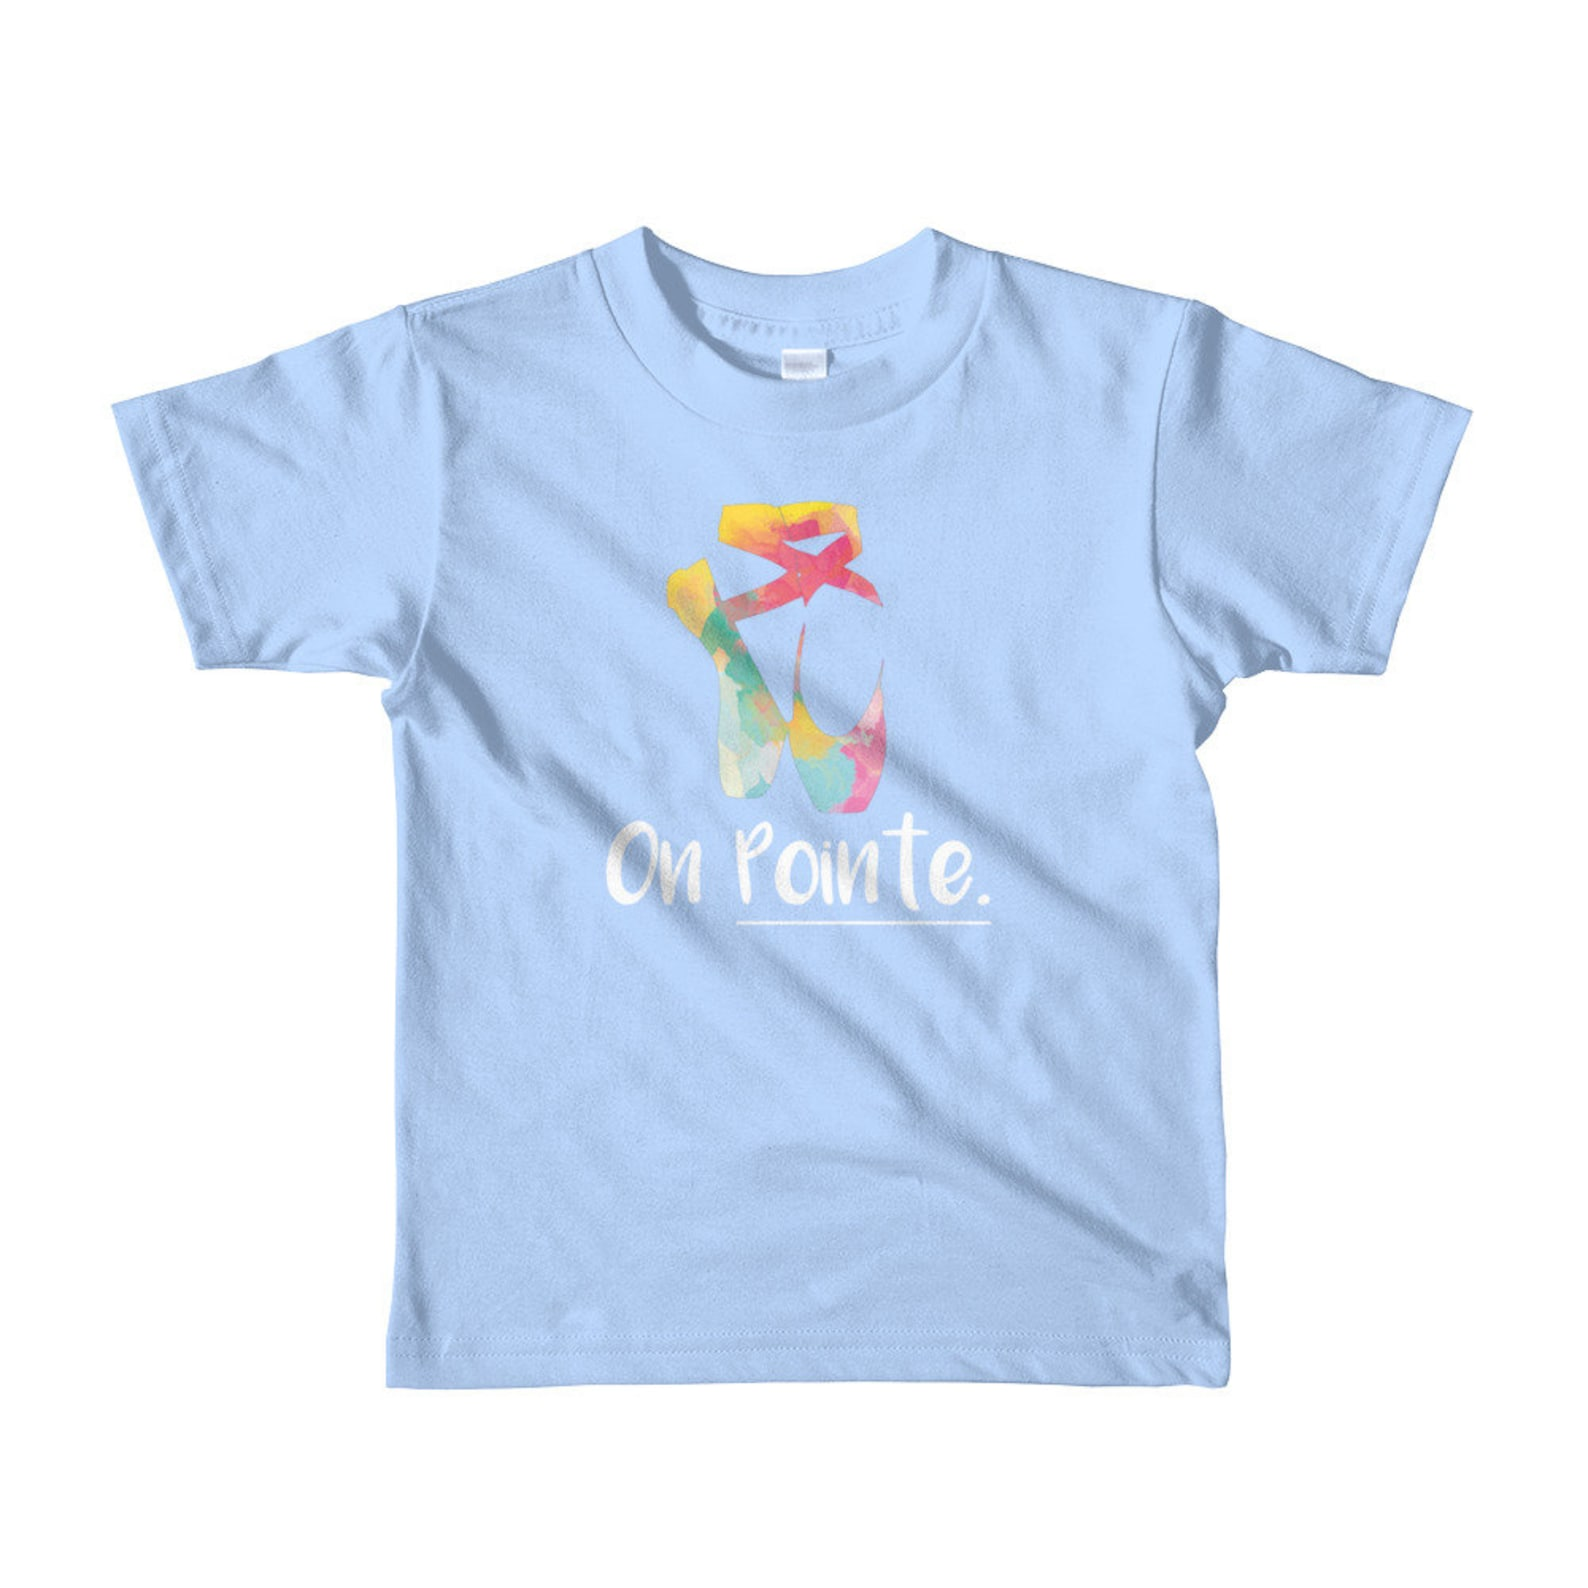 ballet pointe shoe kids t-shirt, cute ballet shirt, ballet shoe shirt, on pointe shirt, dancer shirt, classical dancer shirts, g